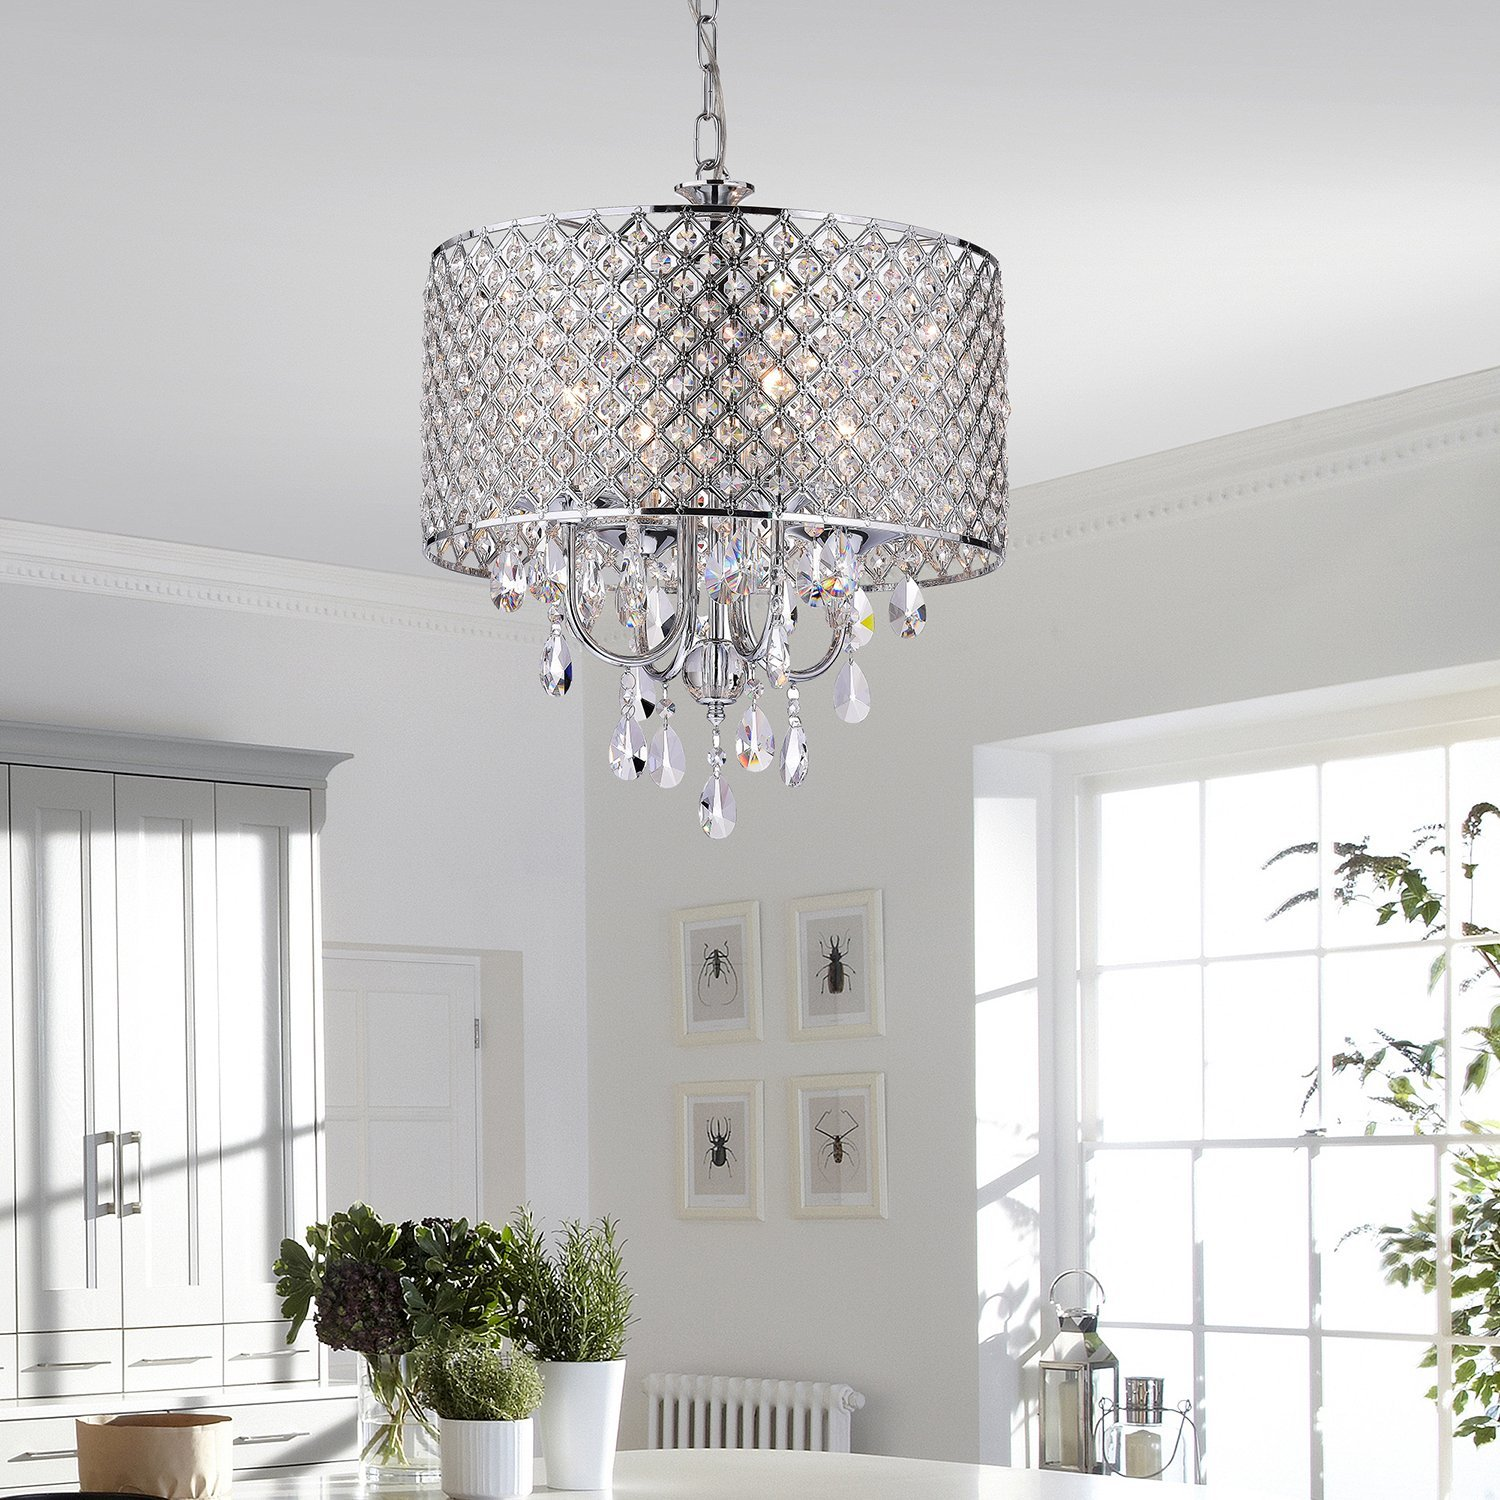 Edvivi epg801ch chrome finish drum shade 4 light crystal chandelier edvivi epg801ch chrome finish drum shade 4 light crystal chandelier ceiling fixture round amazon aloadofball Gallery